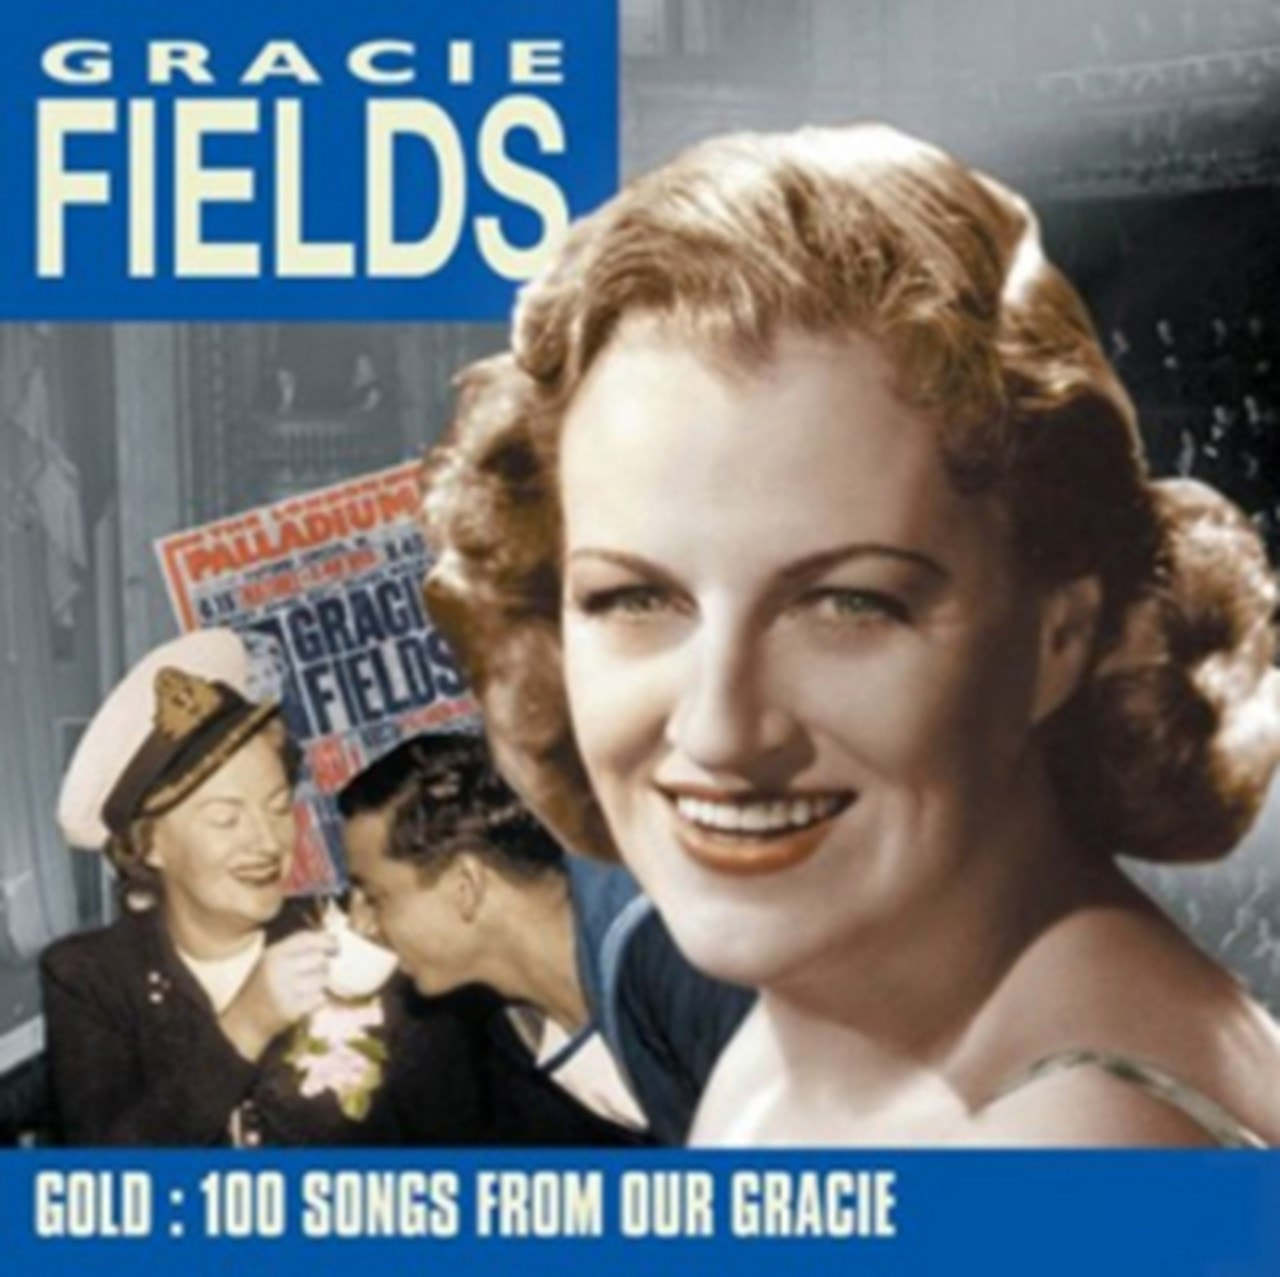 Gold: 100 Songs from Our Gracie - 1